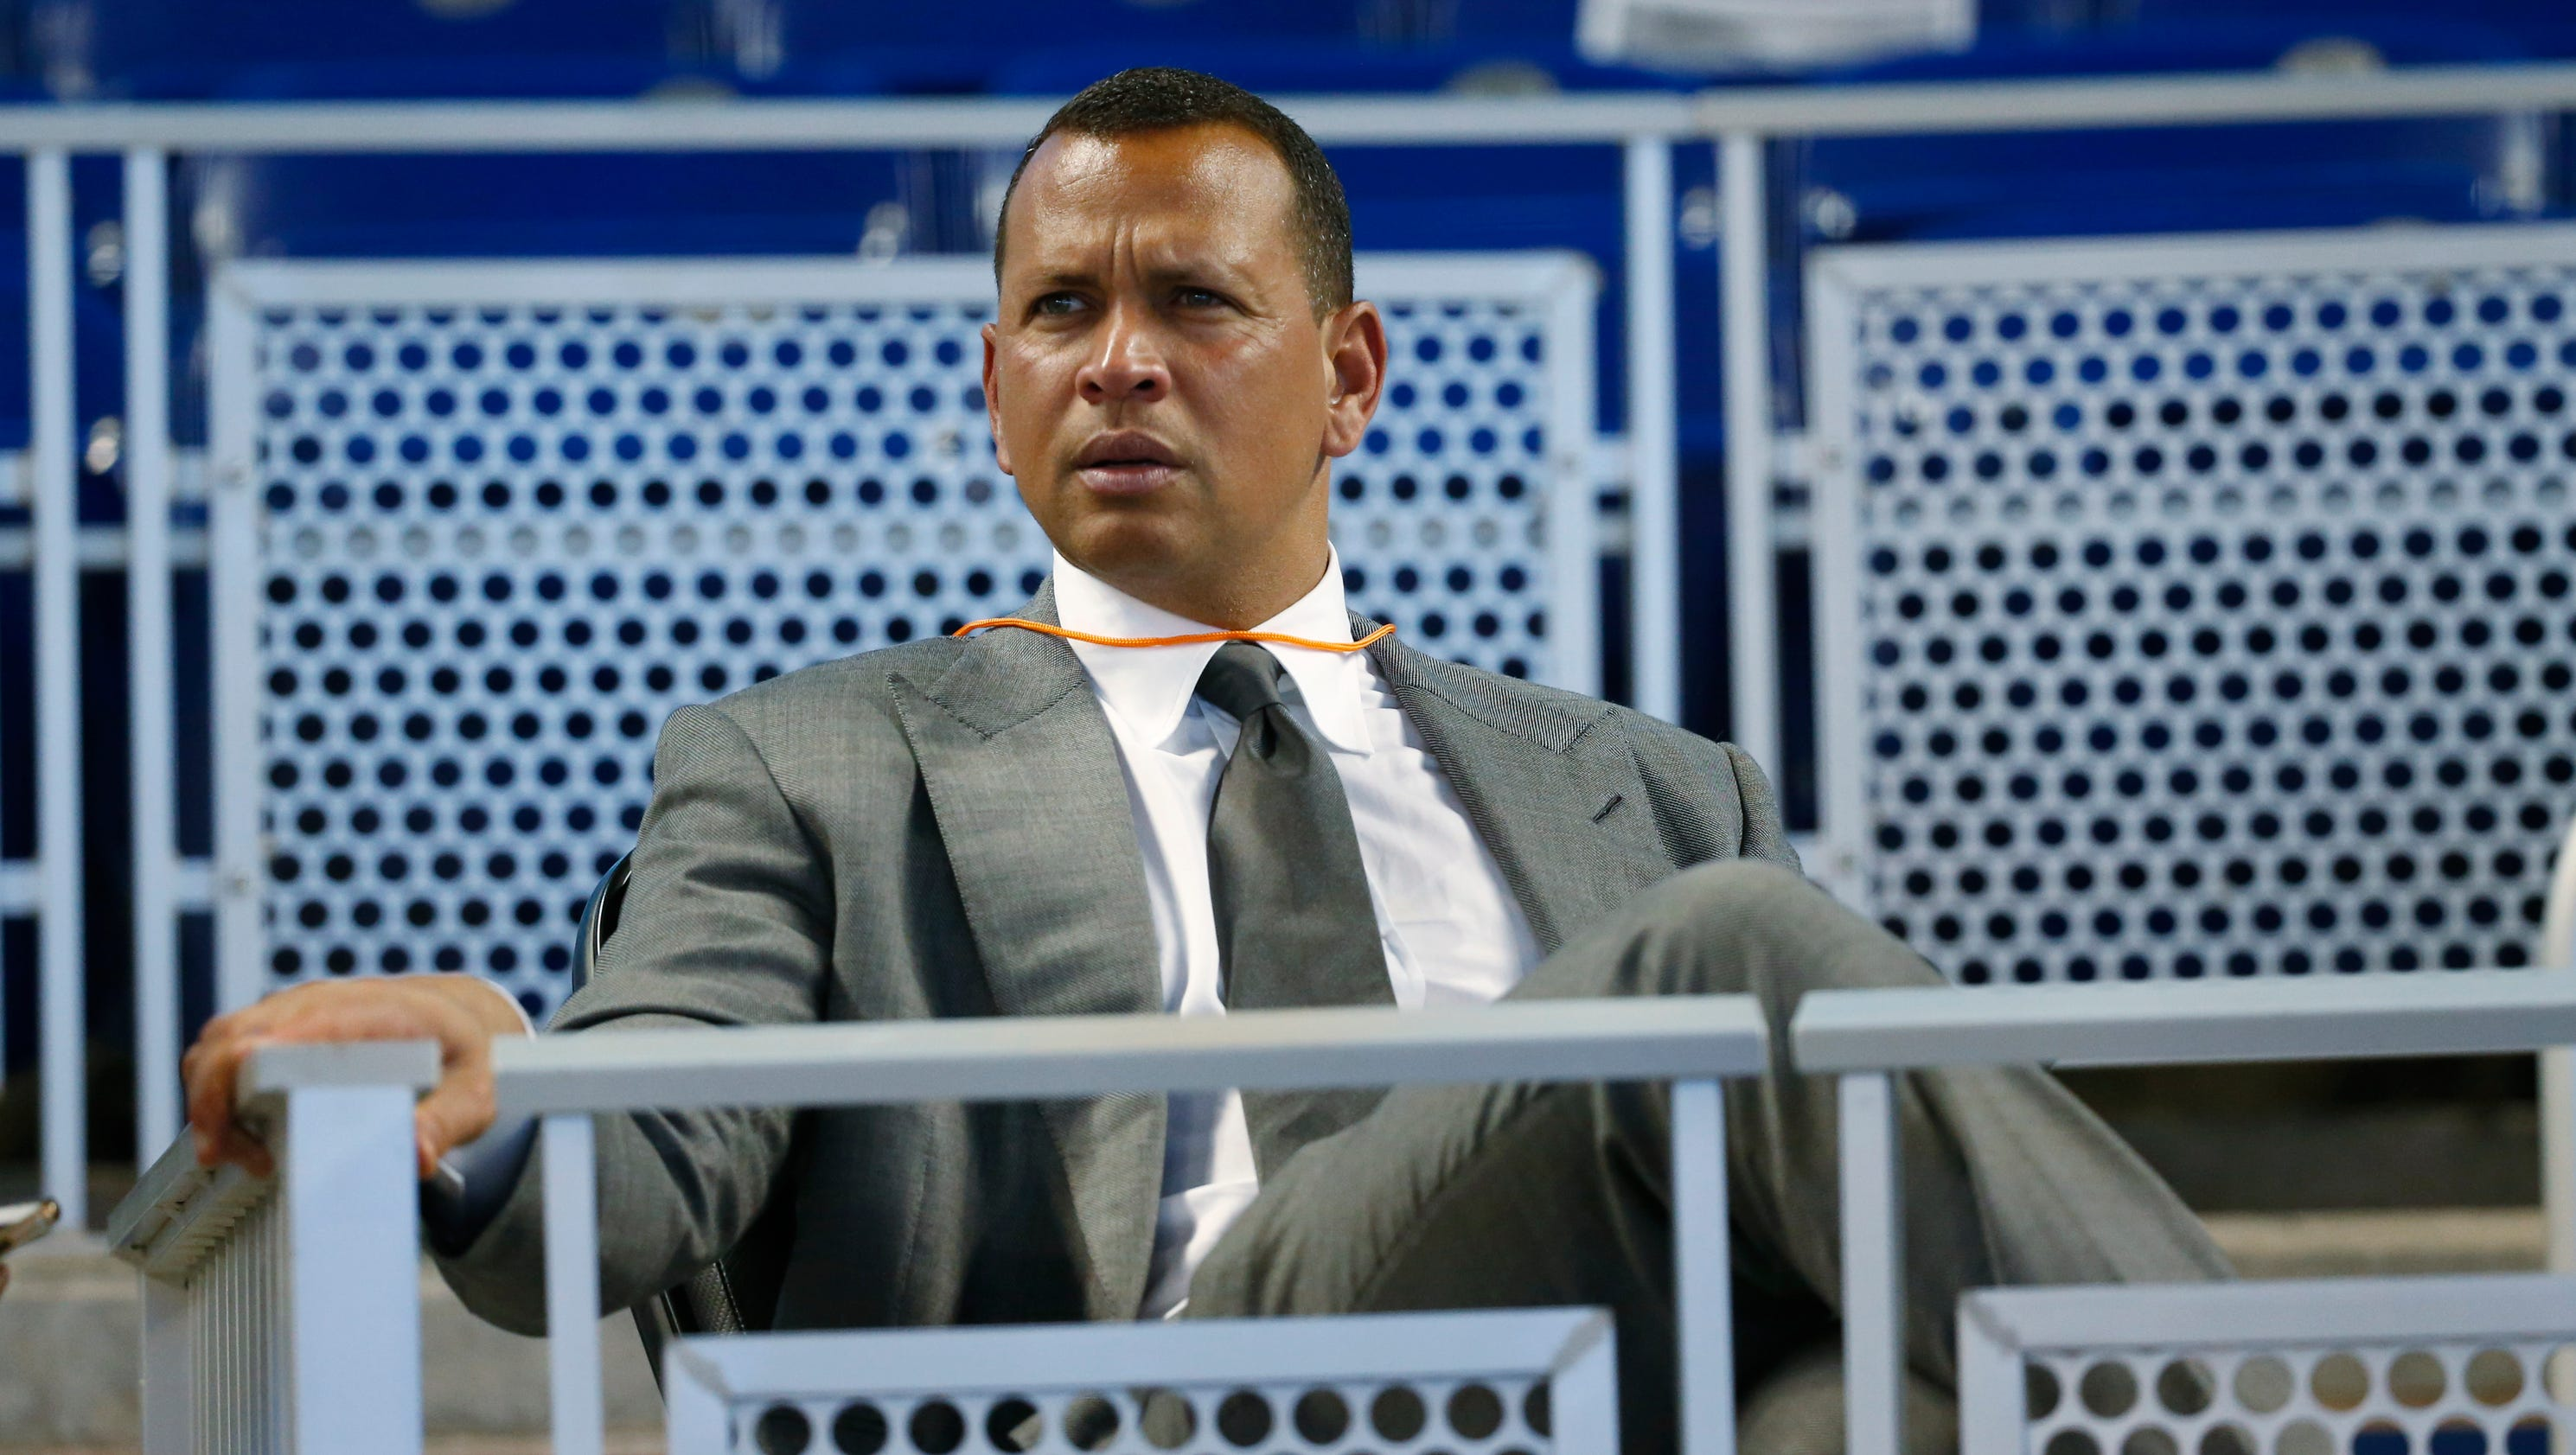 A-Rod 'never expressed interest' in being Yankees manager